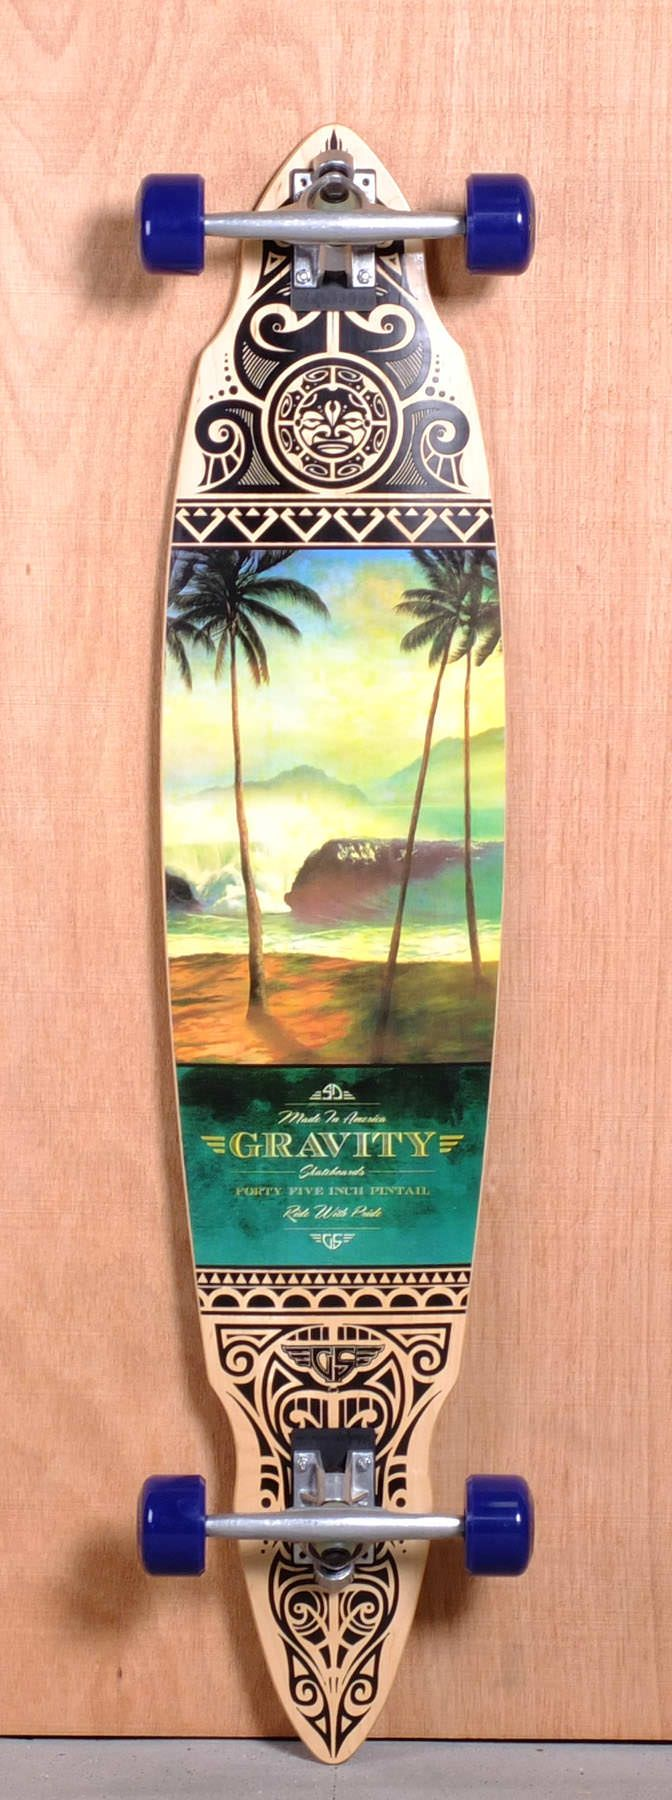 """The Gravity Pintail Longboard Complete is designed for Carving and Cruising. Ships fully assembled and ready to skate! Function: Carving, Cruising Features: Concave Material: 7 Ply Maple Length: 45.00"""" Width: 9.5"""" Wheelbase: 34.125"""" Thickness: 1/2"""" Hole Pattern: New School Grip: Black  My Dream Board!!! ✌️"""